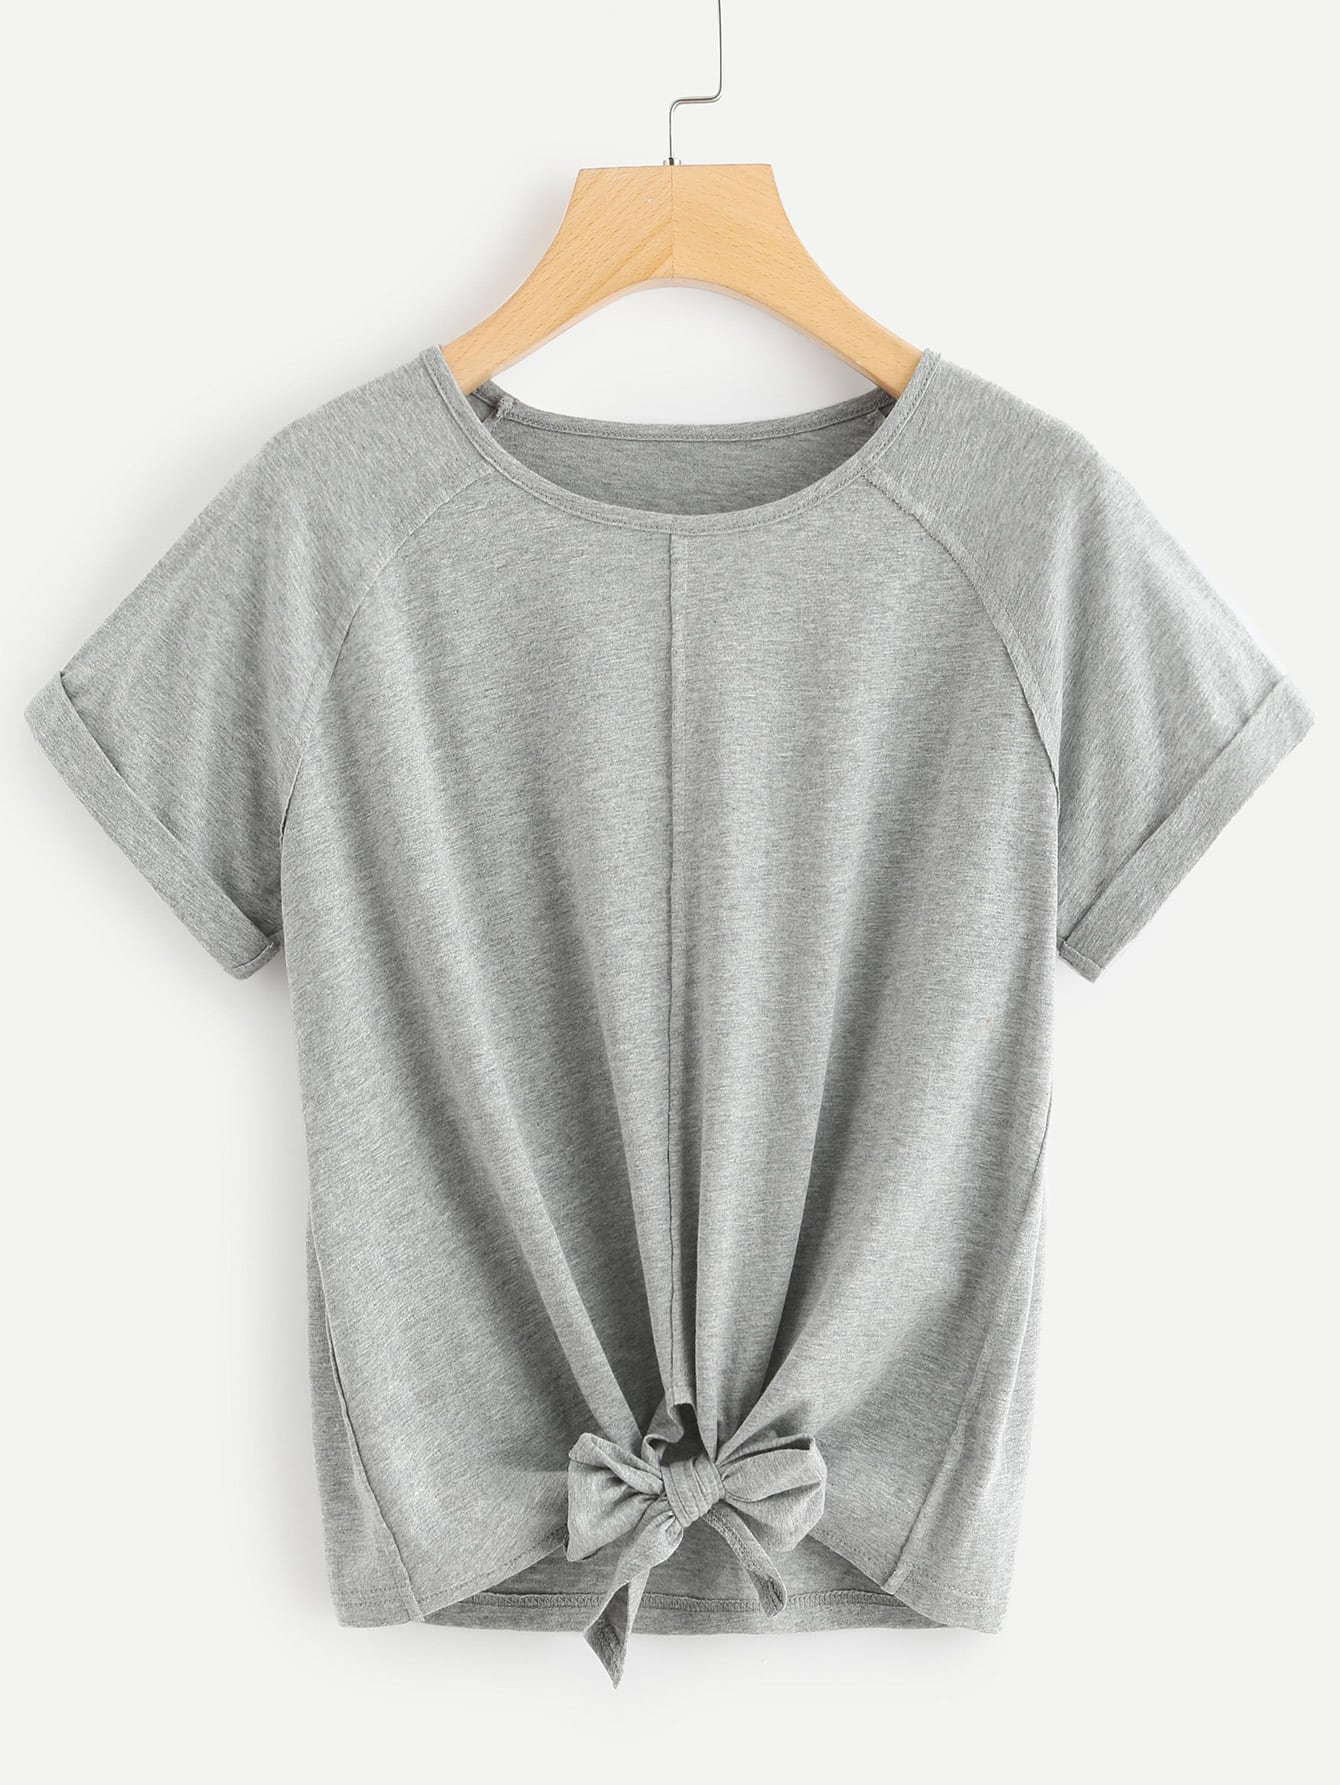 Knot Front Cuffed Tee